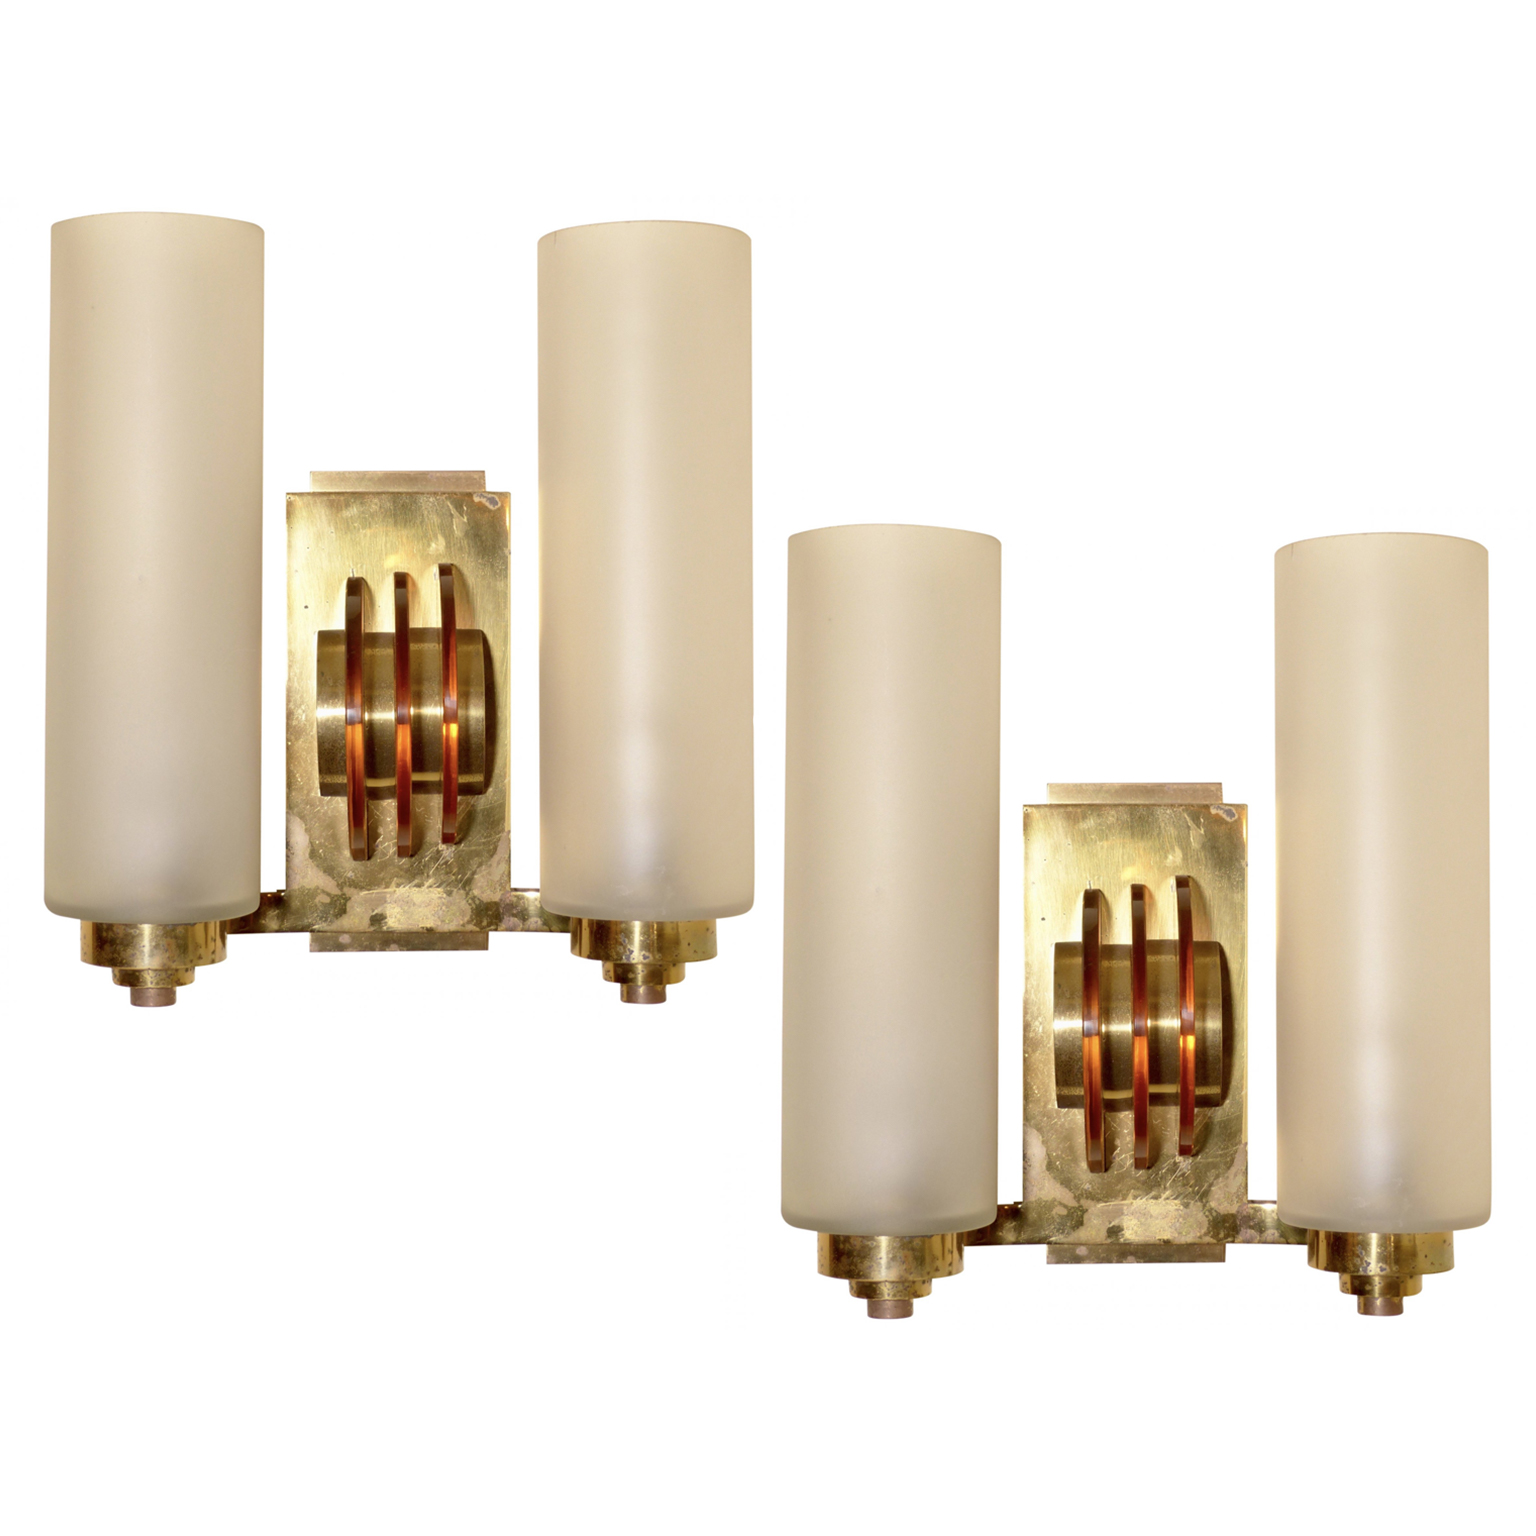 Art Deco Sconces with brass hardware and double light fixtures.